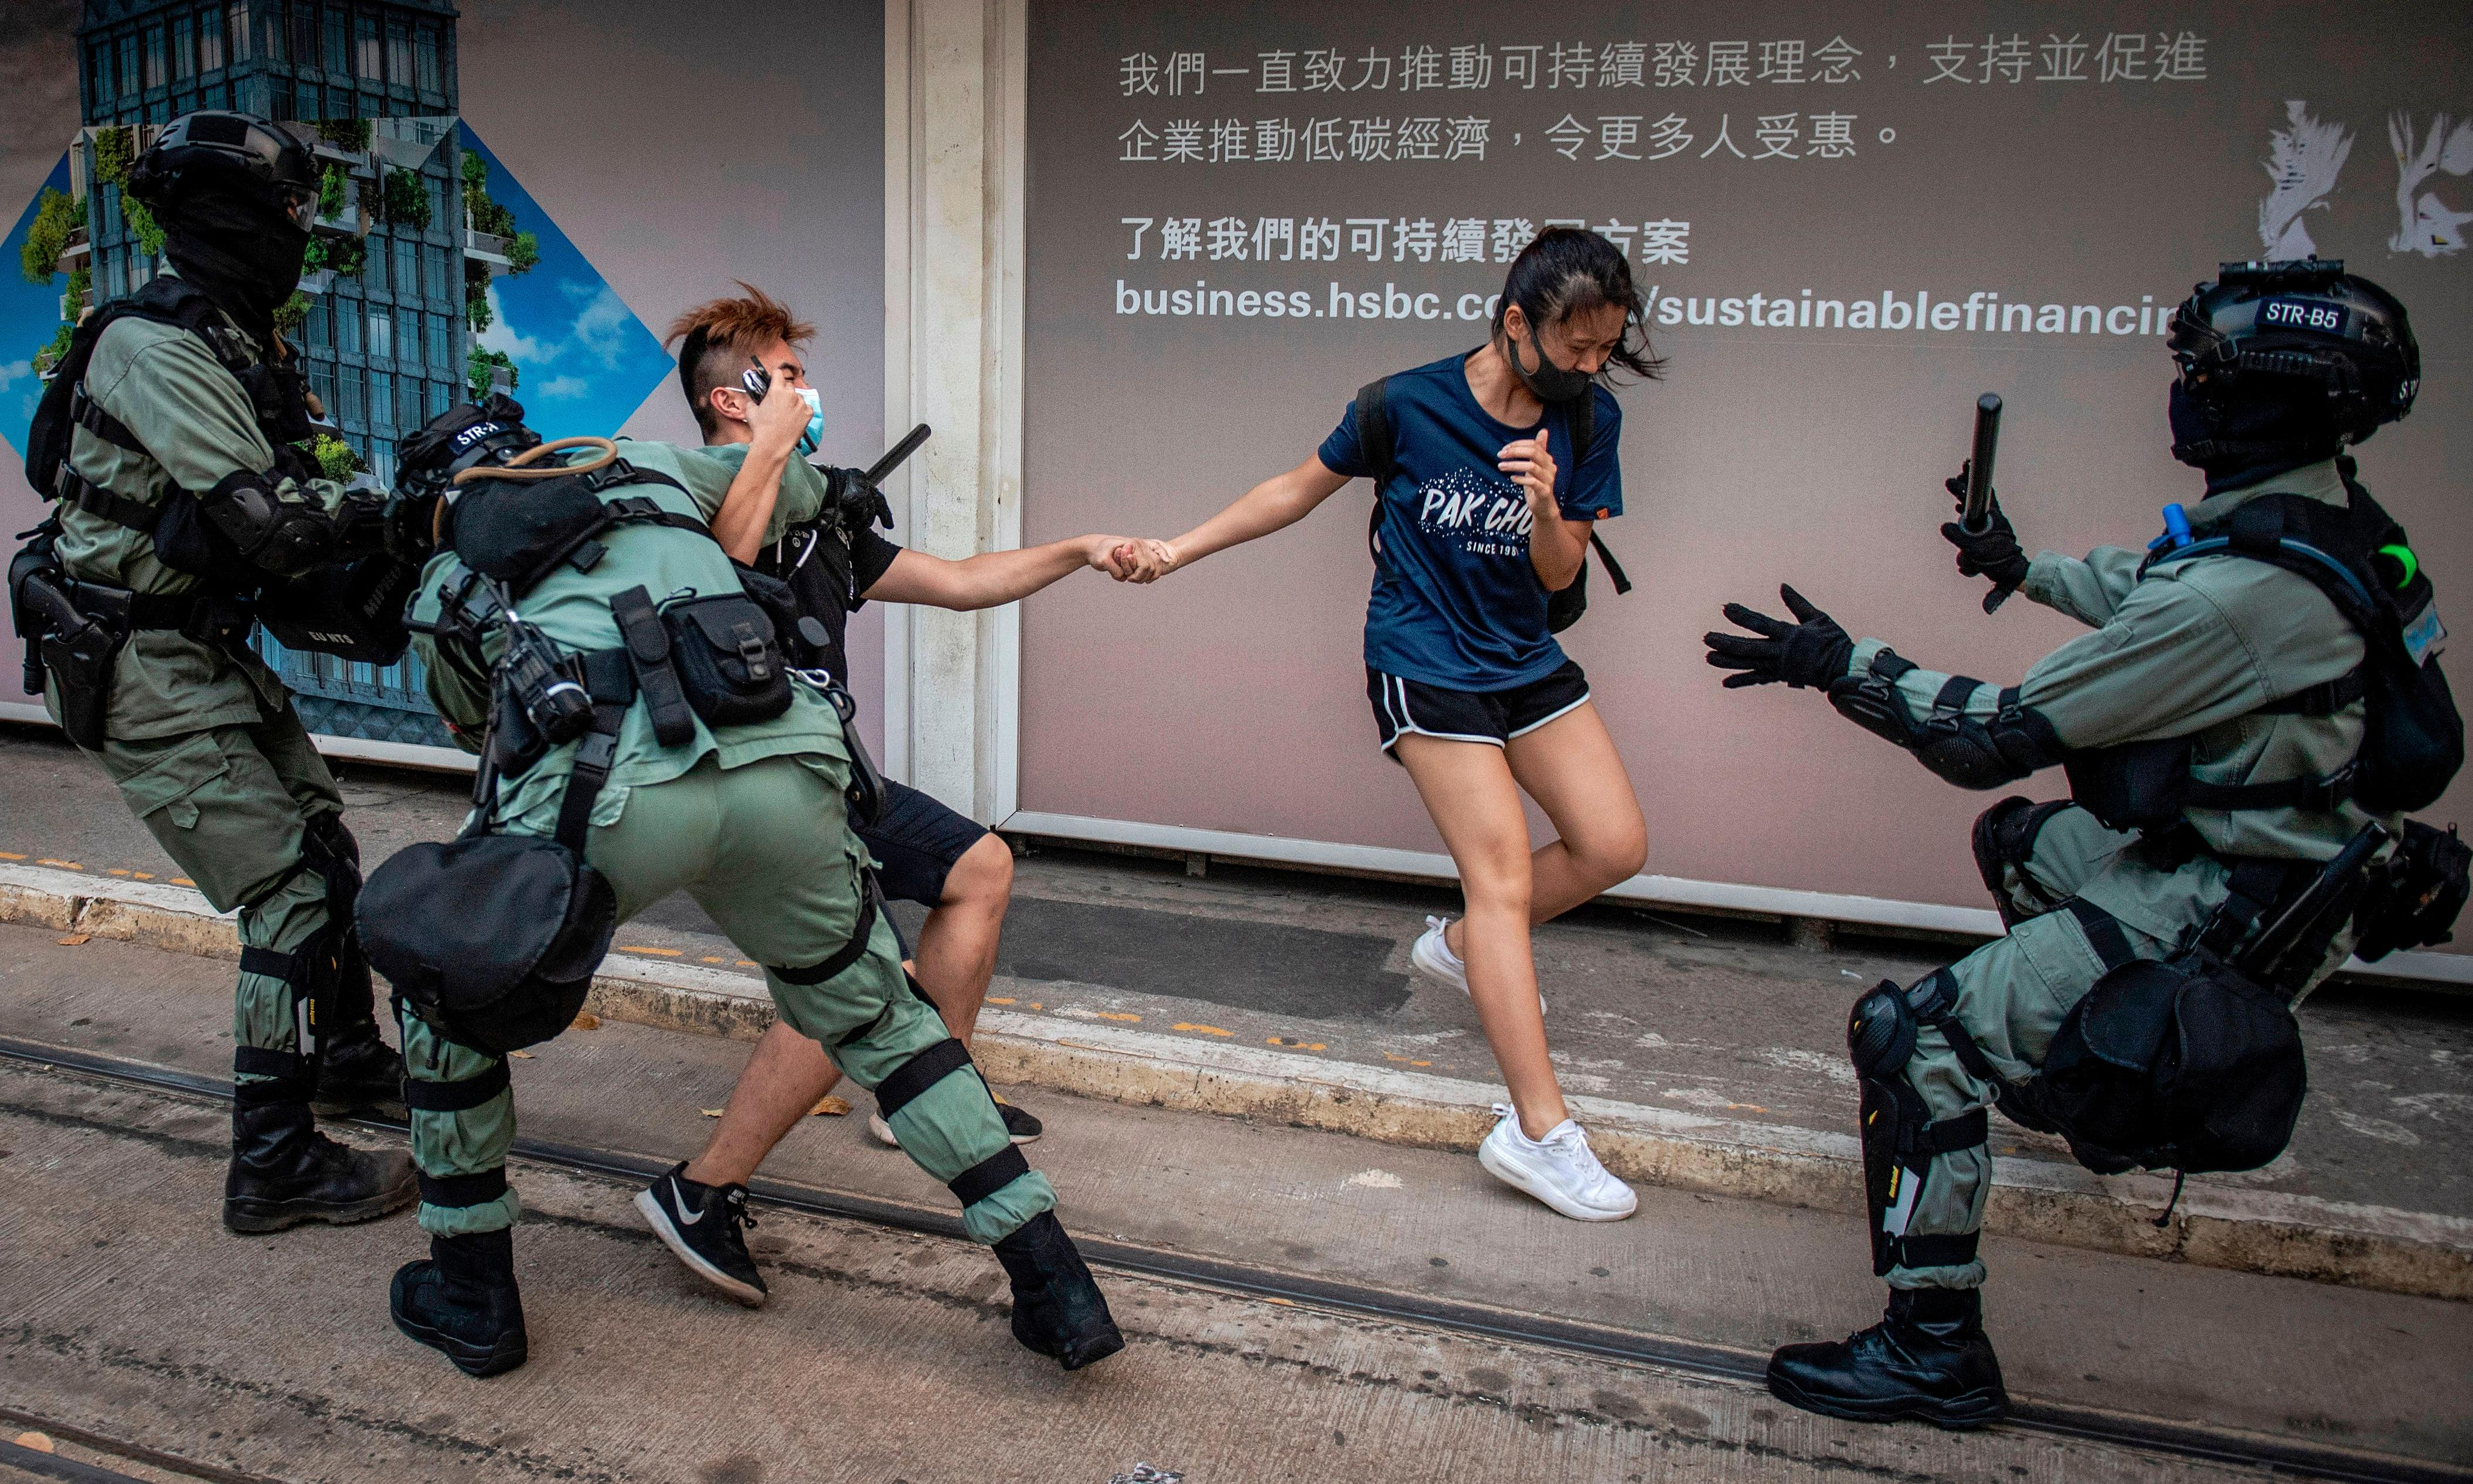 From the US to Hong Kong, the right to protest peacefully is under attack